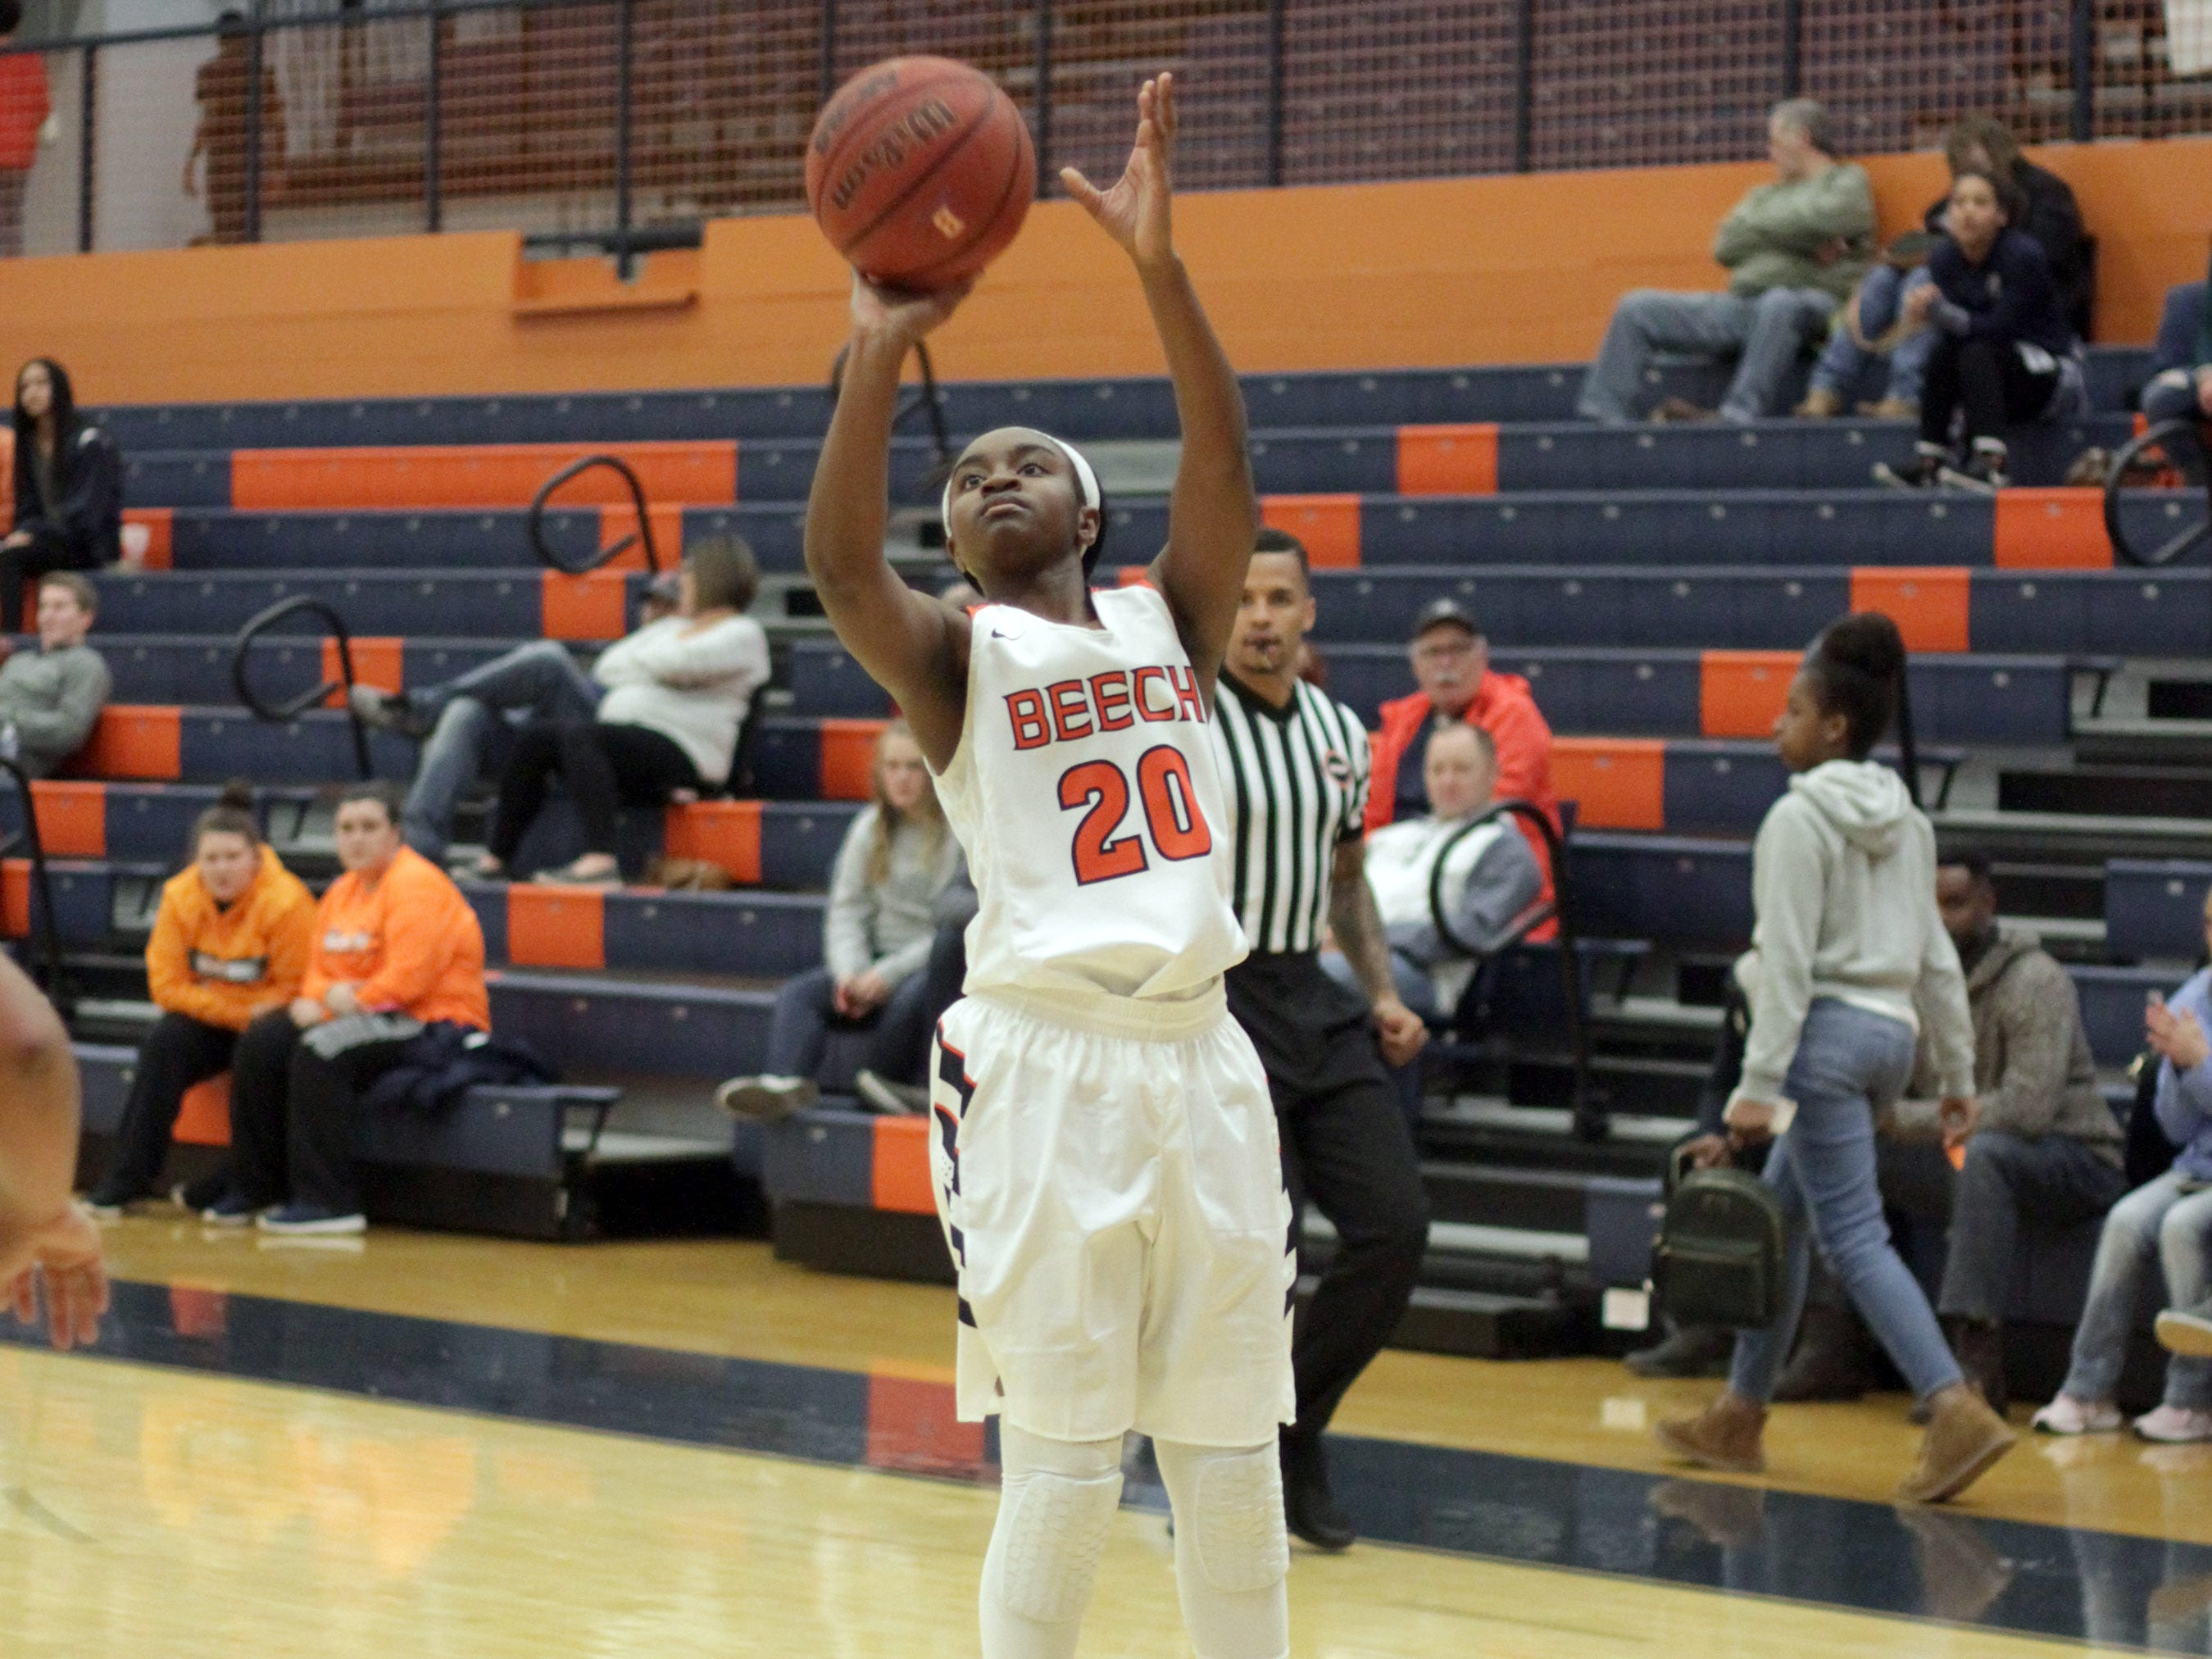 Beech's Deshiya Hoosier shoots and nails a three pointer against Springfield on Friday, December 21, 2018.